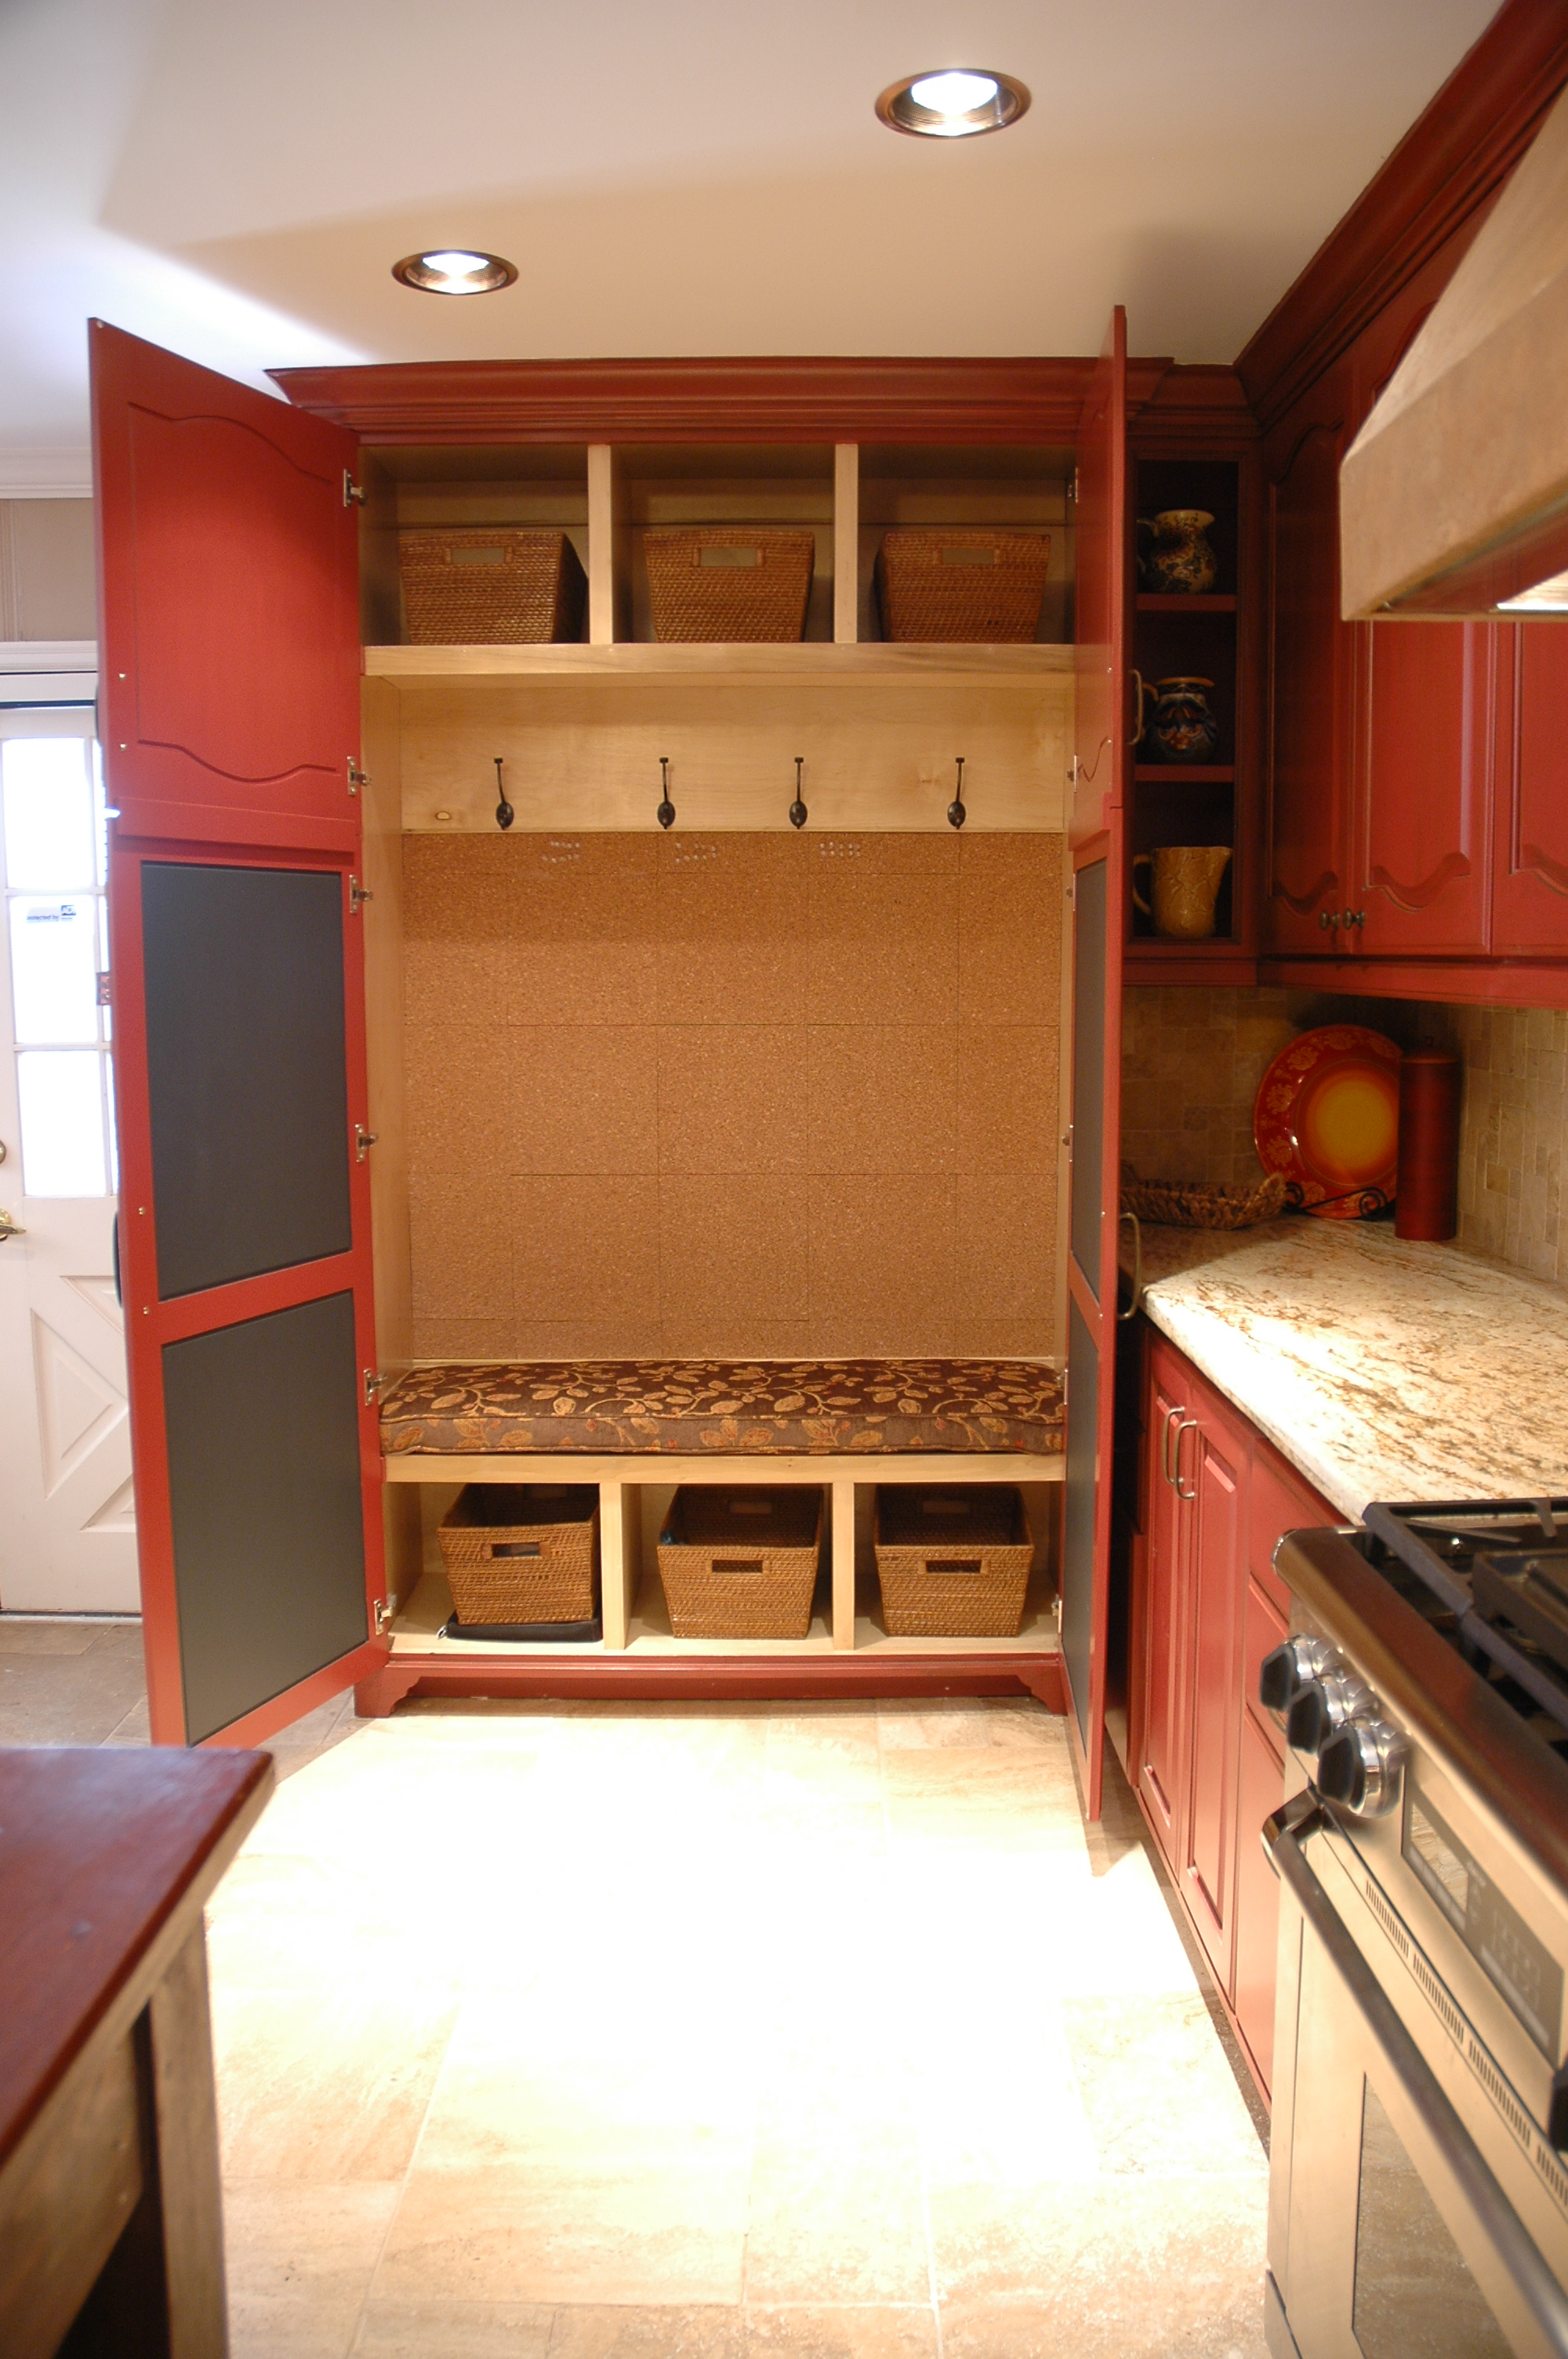 Fitted with a cushion, cork boad, baskets and chalkboad paint.JPG